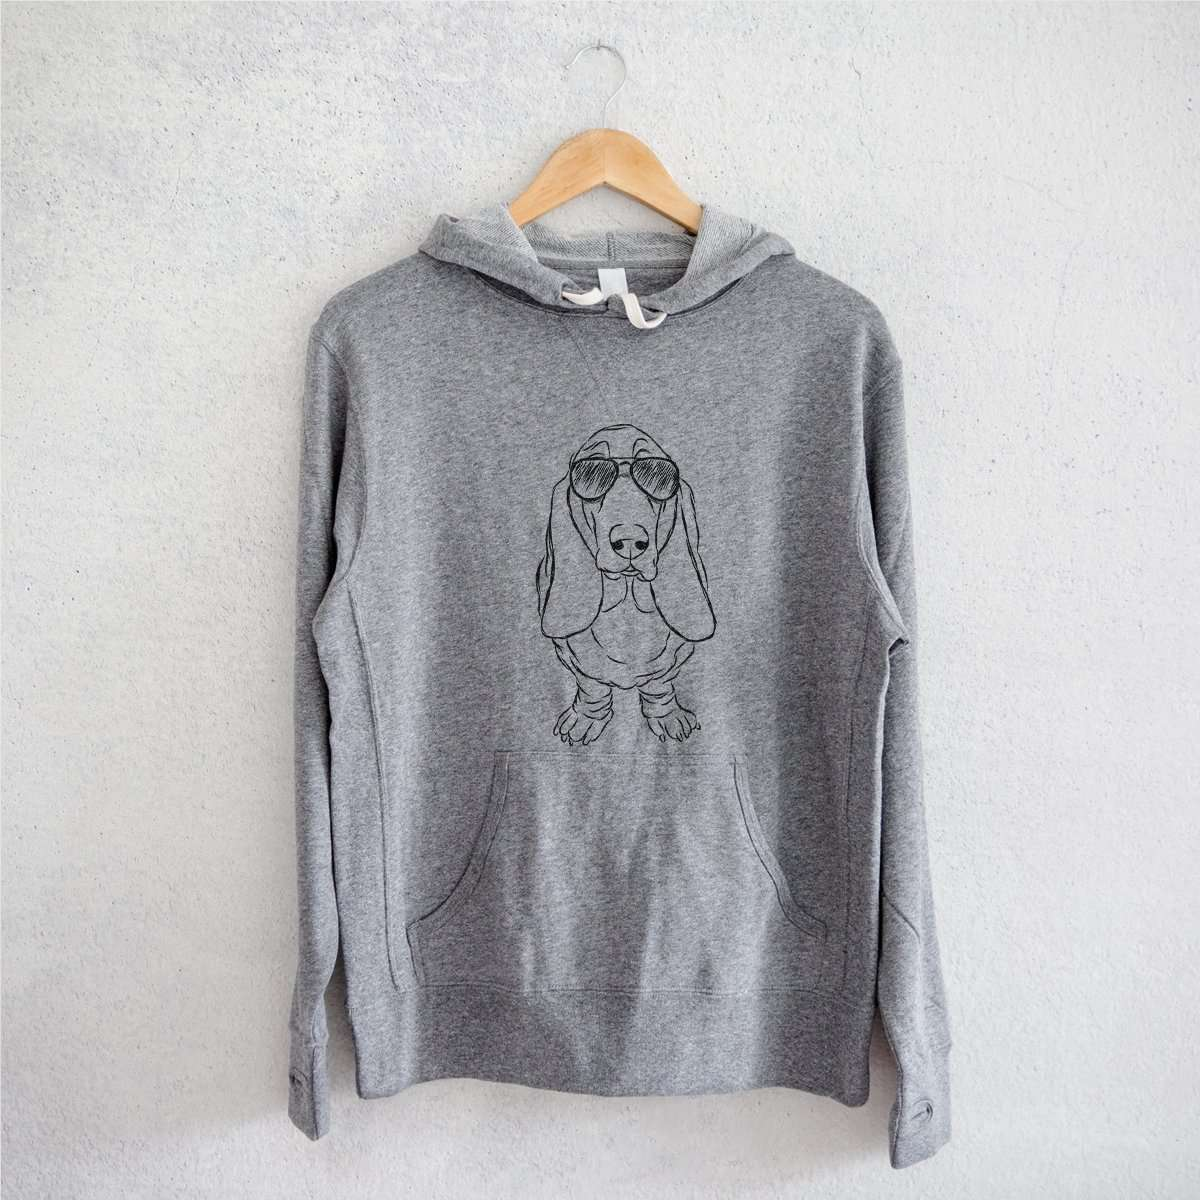 Charlie the Basset Hound - Grey French Terry Sweatshirt - Unisex Slim Fit